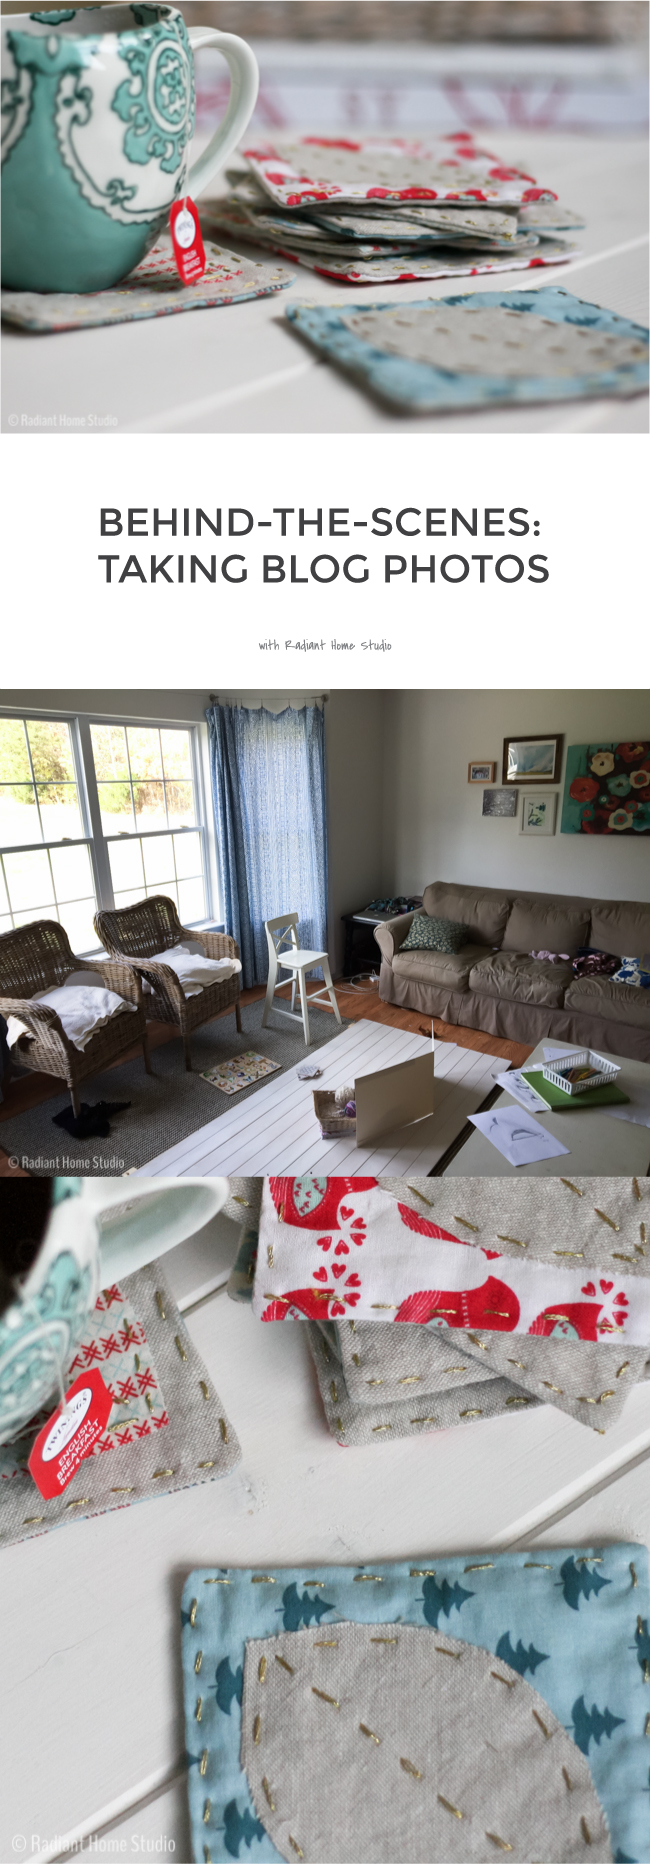 Behind-the-Scenes: What My House Really Looks Like When I Take Blog Photos   Radiant Home Studio